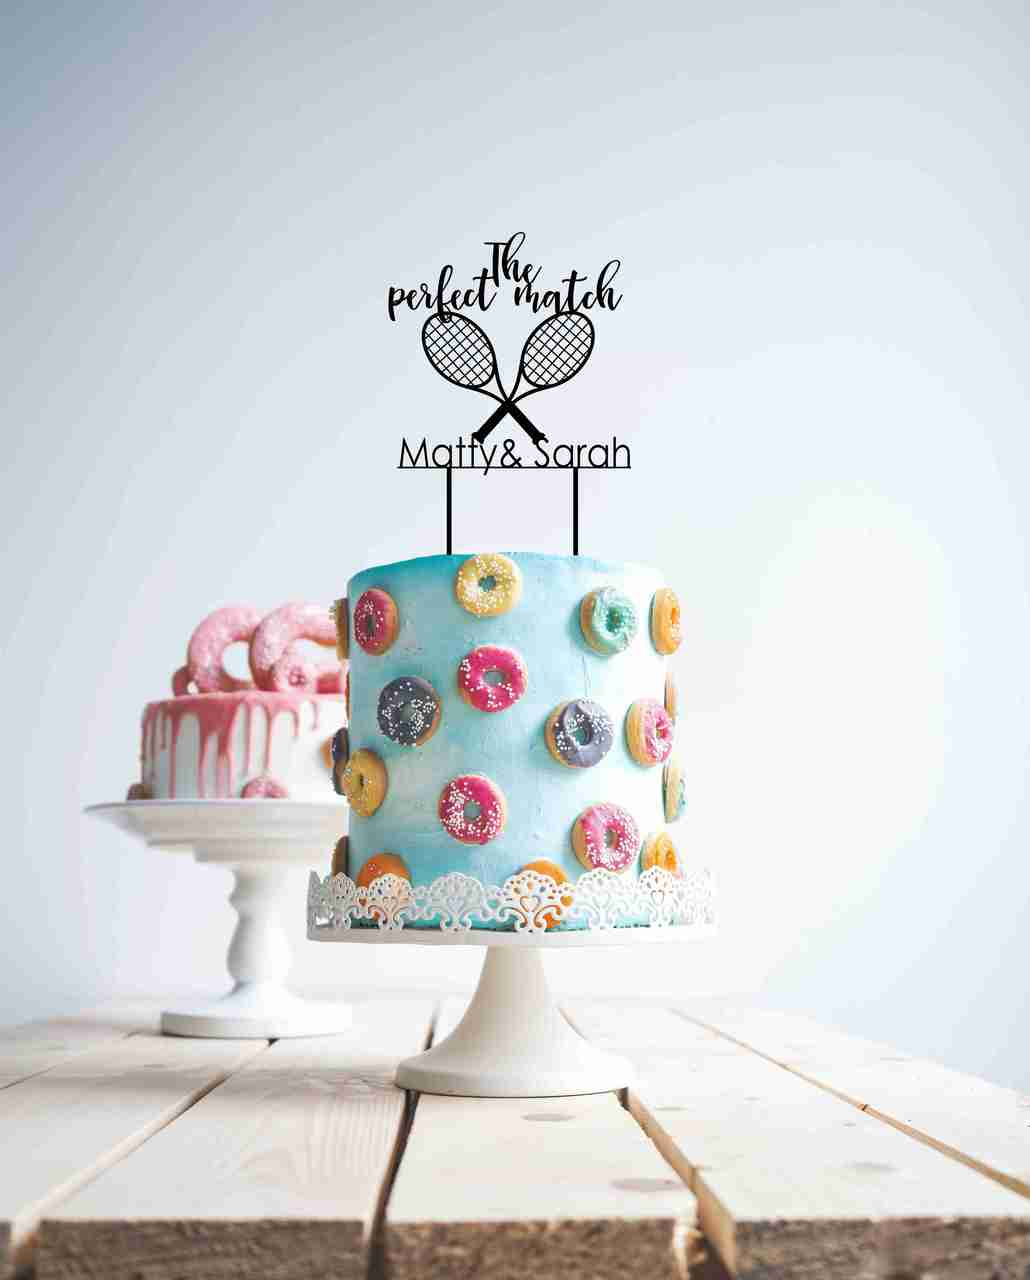 Tennis - The perfect match Couple Cake topper